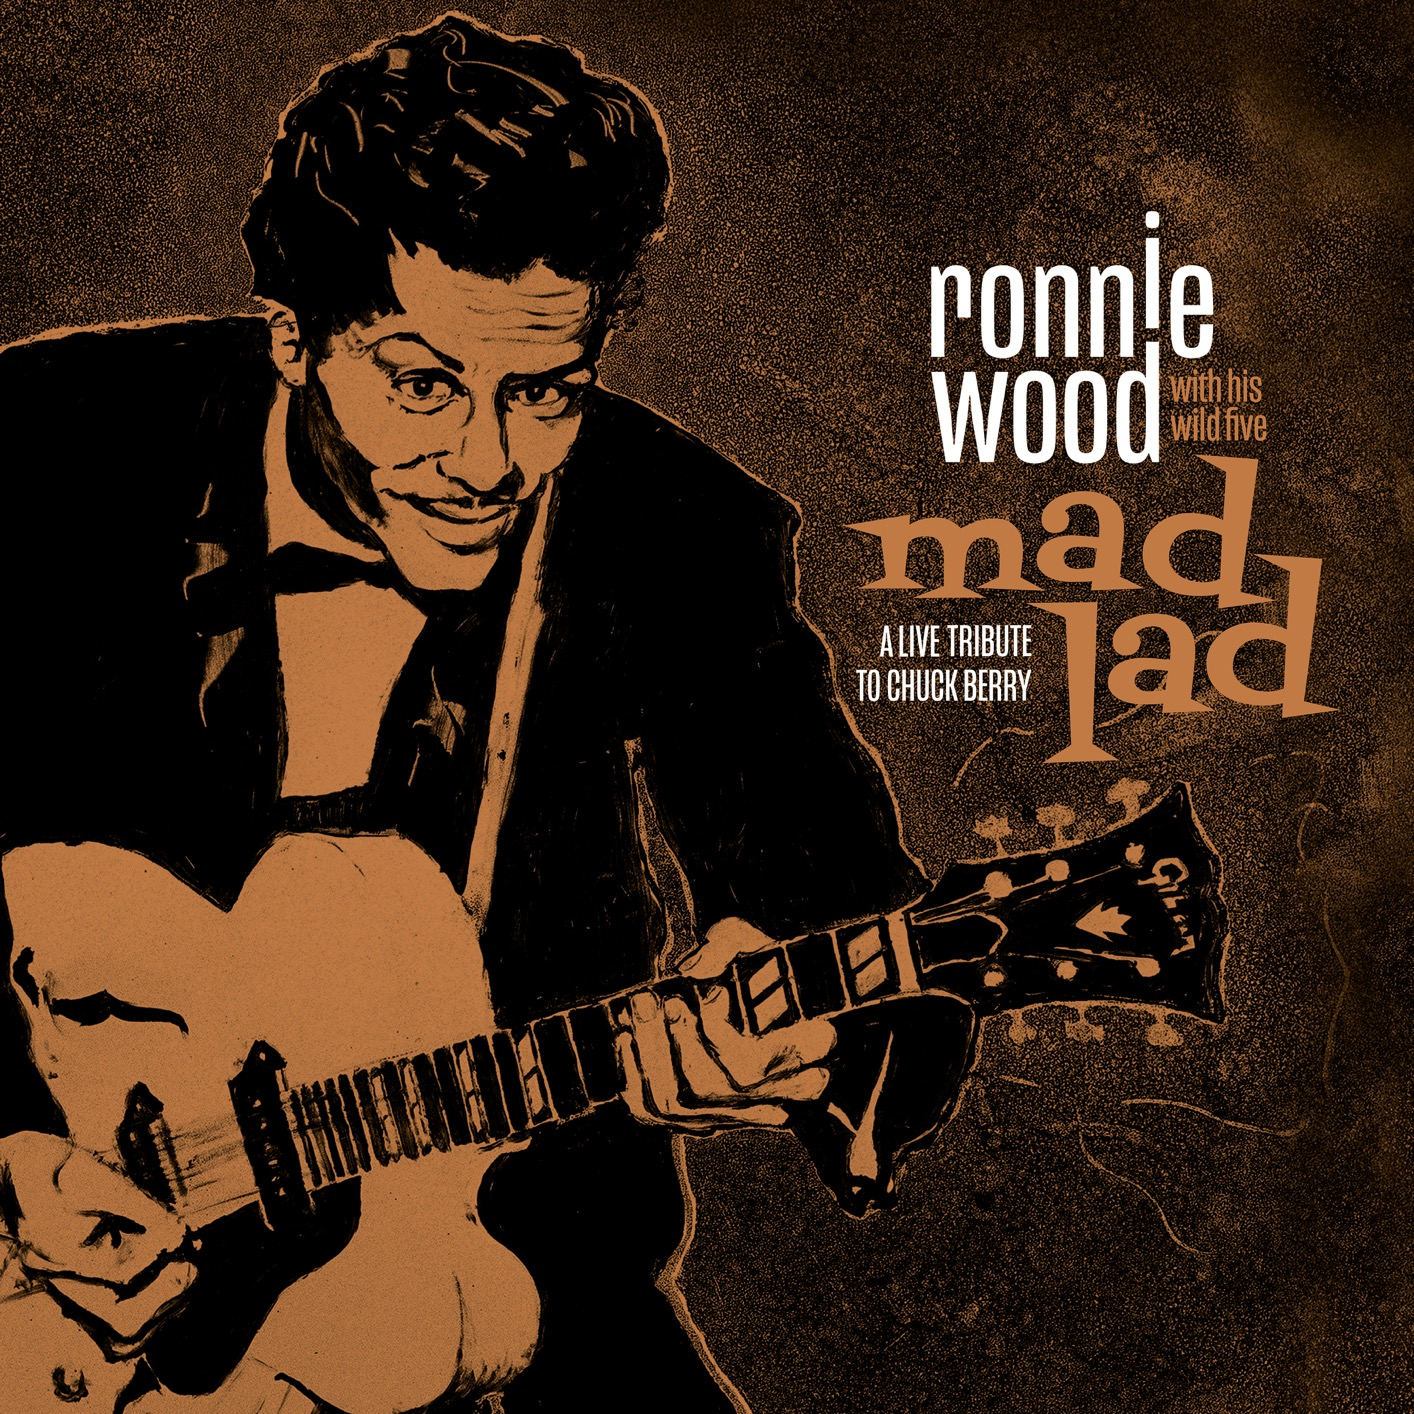 Ronnie Wood & His Wild Five - Mad Lad: A Live Tribute to Chuck Berry (2019)